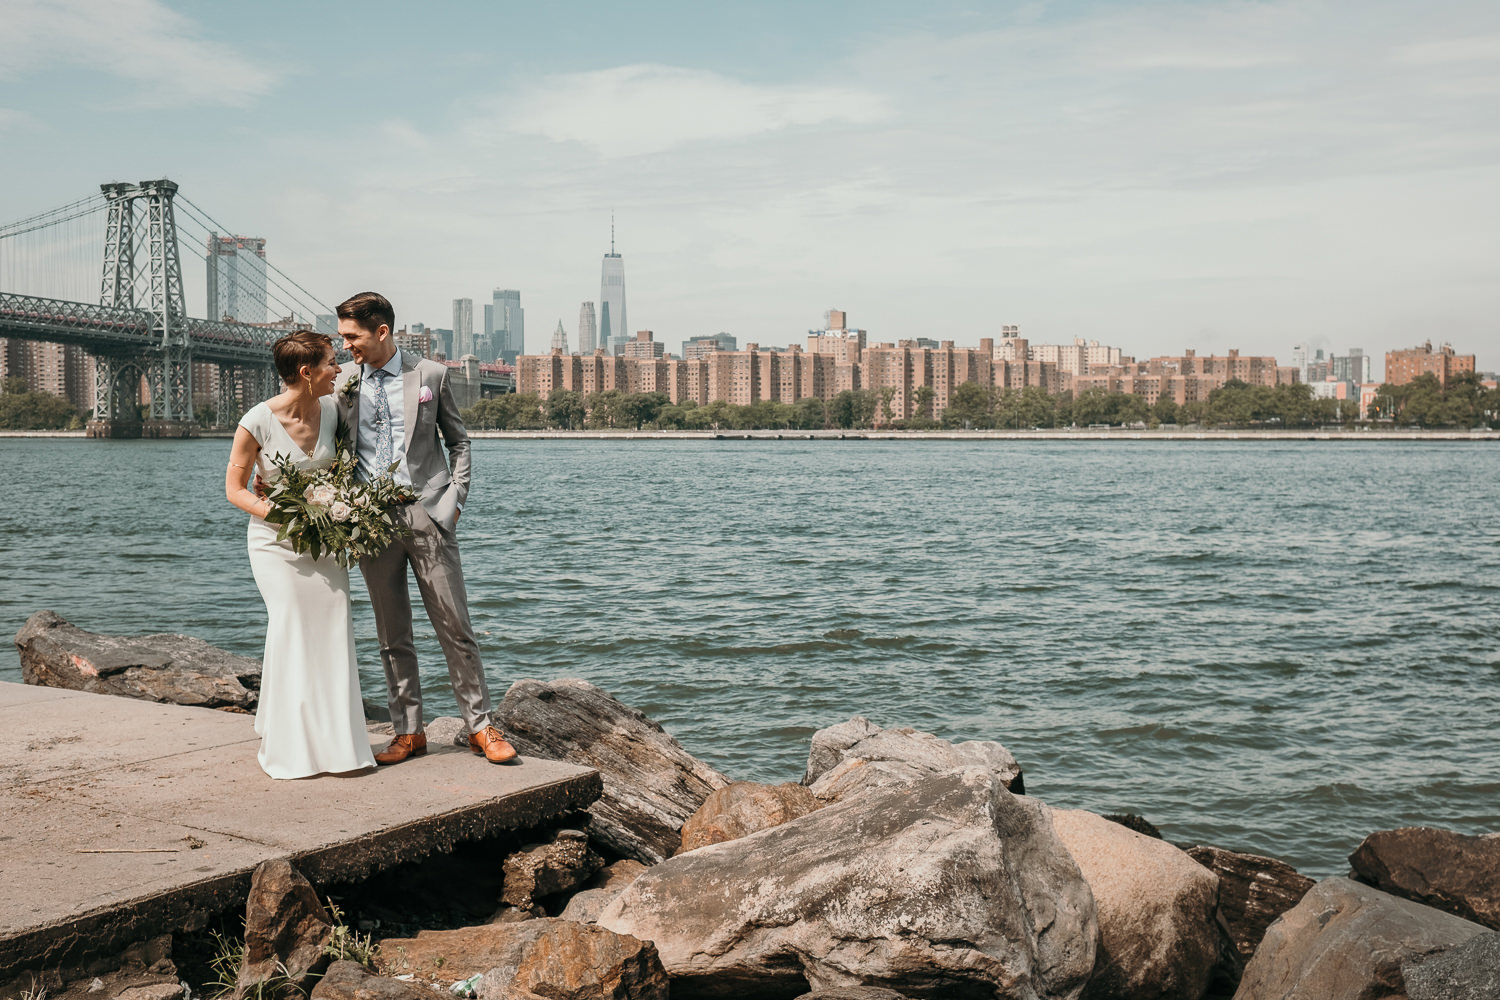 newlyweds posing near water Williamsburg bride and NYC skyline in background